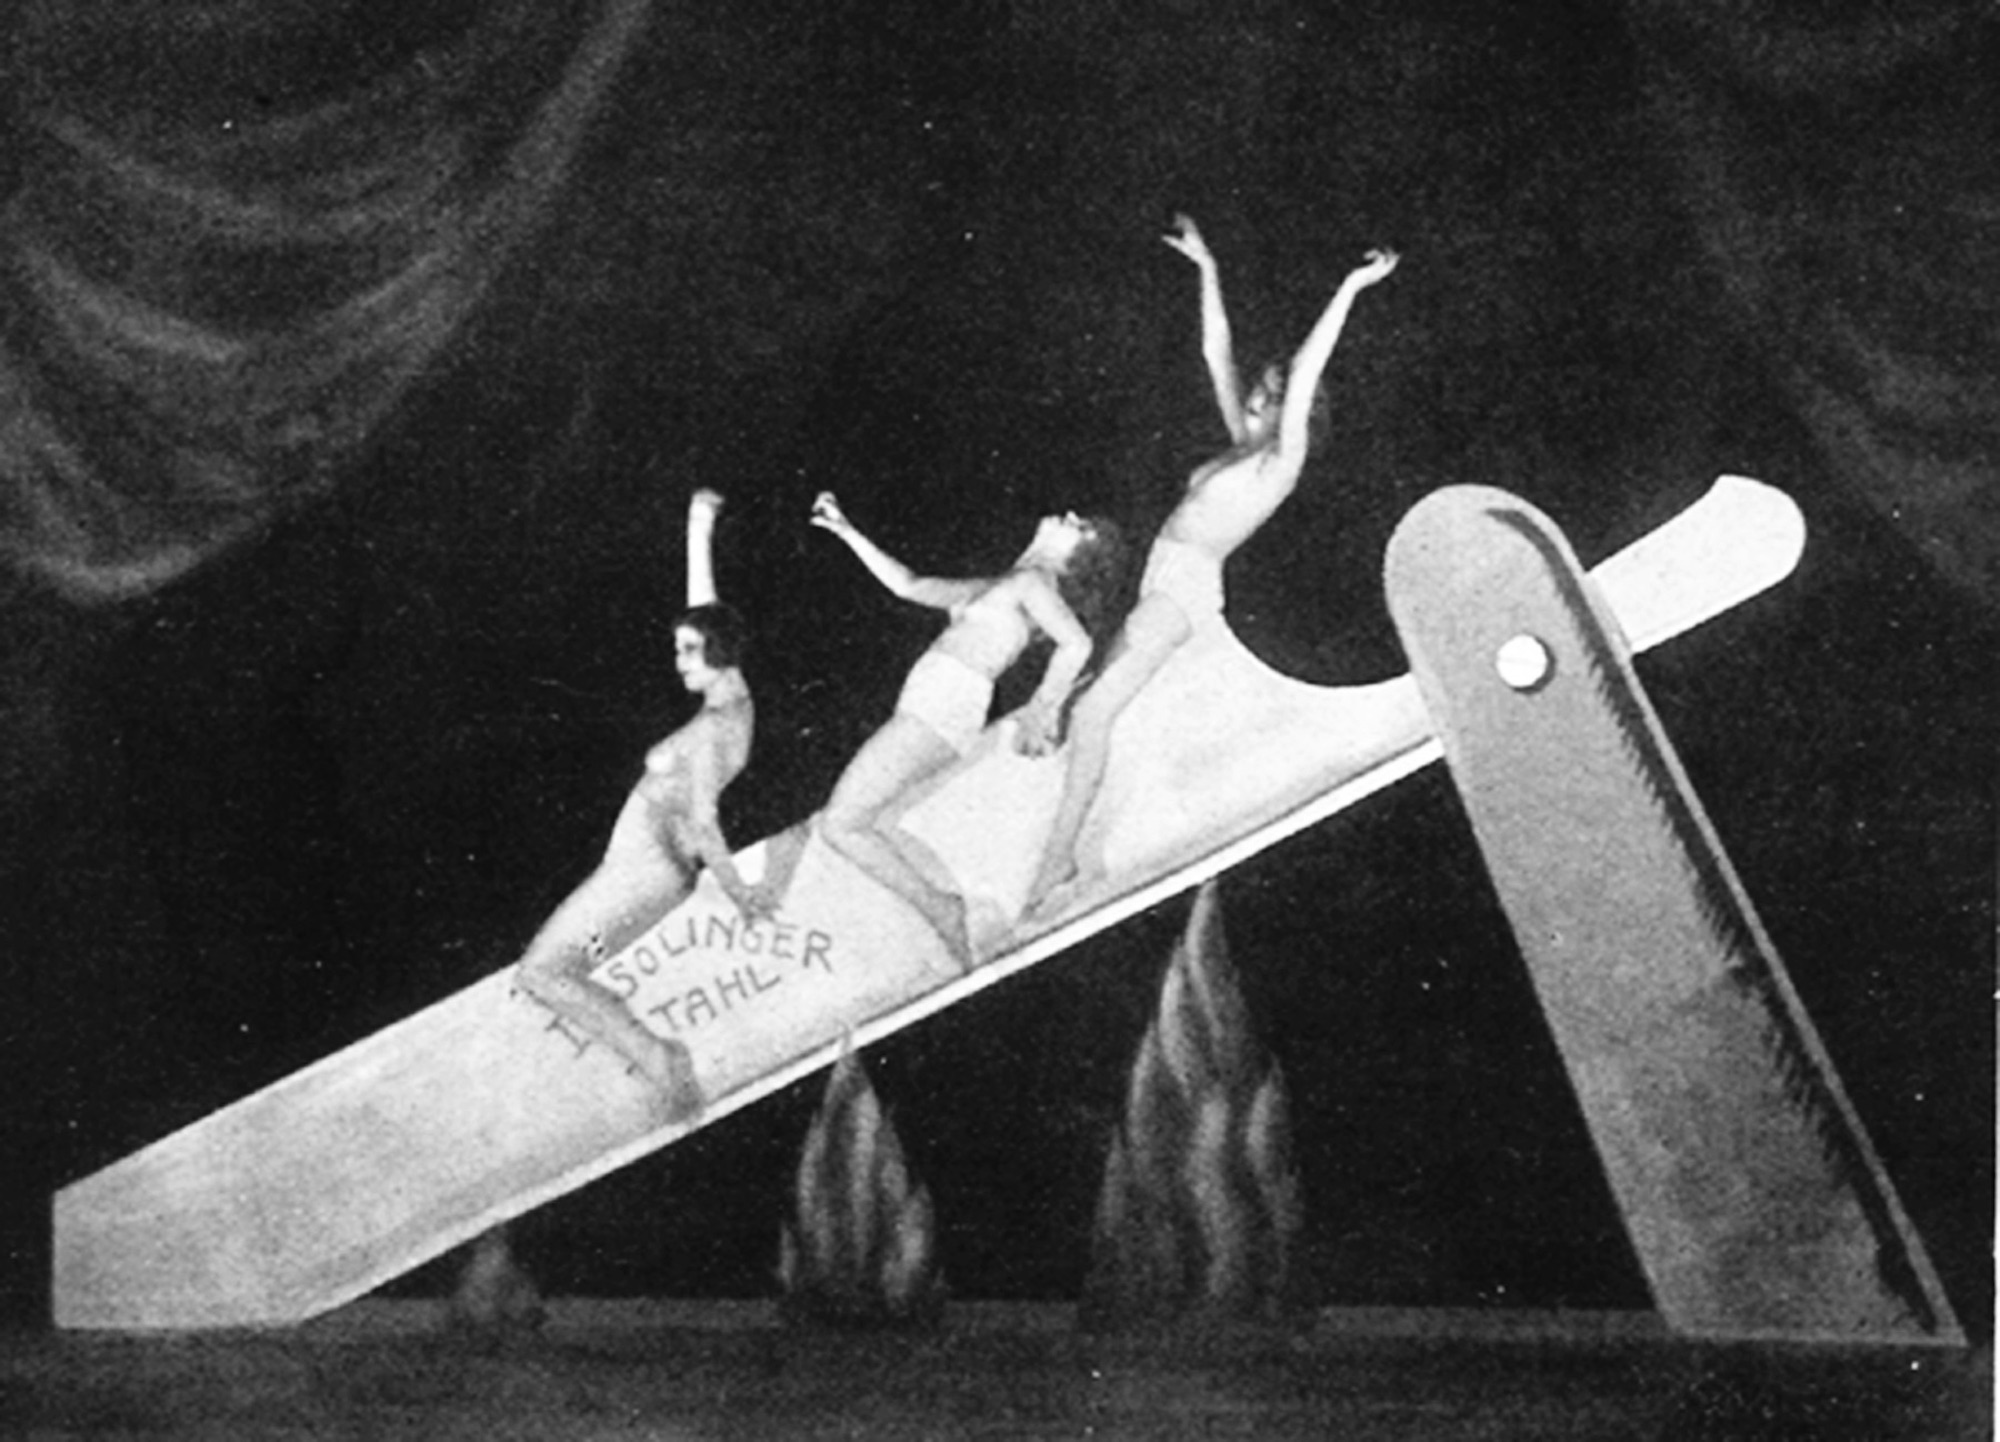 Unknown photographer, 'Slide on the Razor', performance as part of the Haller Revue 'Under and Over', Berlin, 1923. Courtesy Feral House